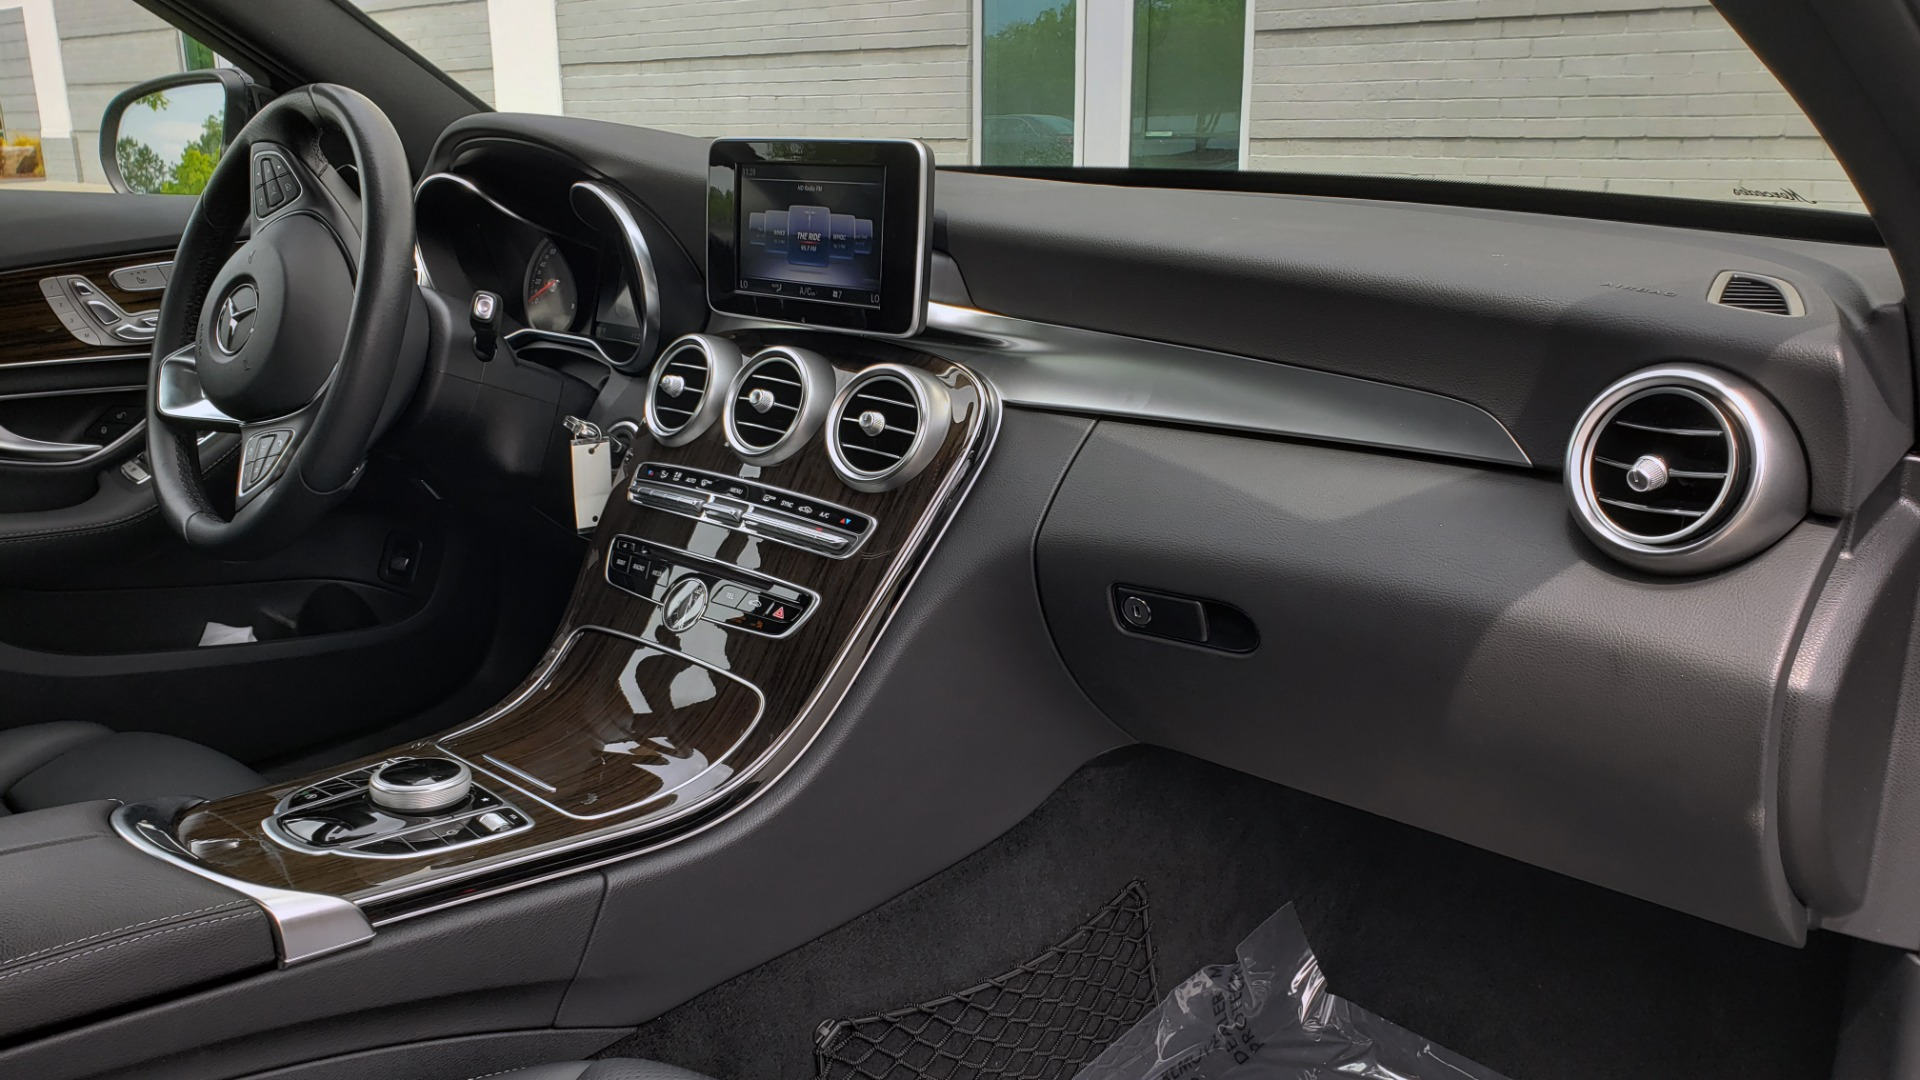 Used 2018 Mercedes-Benz C-CLASS C 300 PREMIUM / HTD STS / APPLE CARPLAY / 18IN WHEELS / REARVIEW for sale $24,795 at Formula Imports in Charlotte NC 28227 72